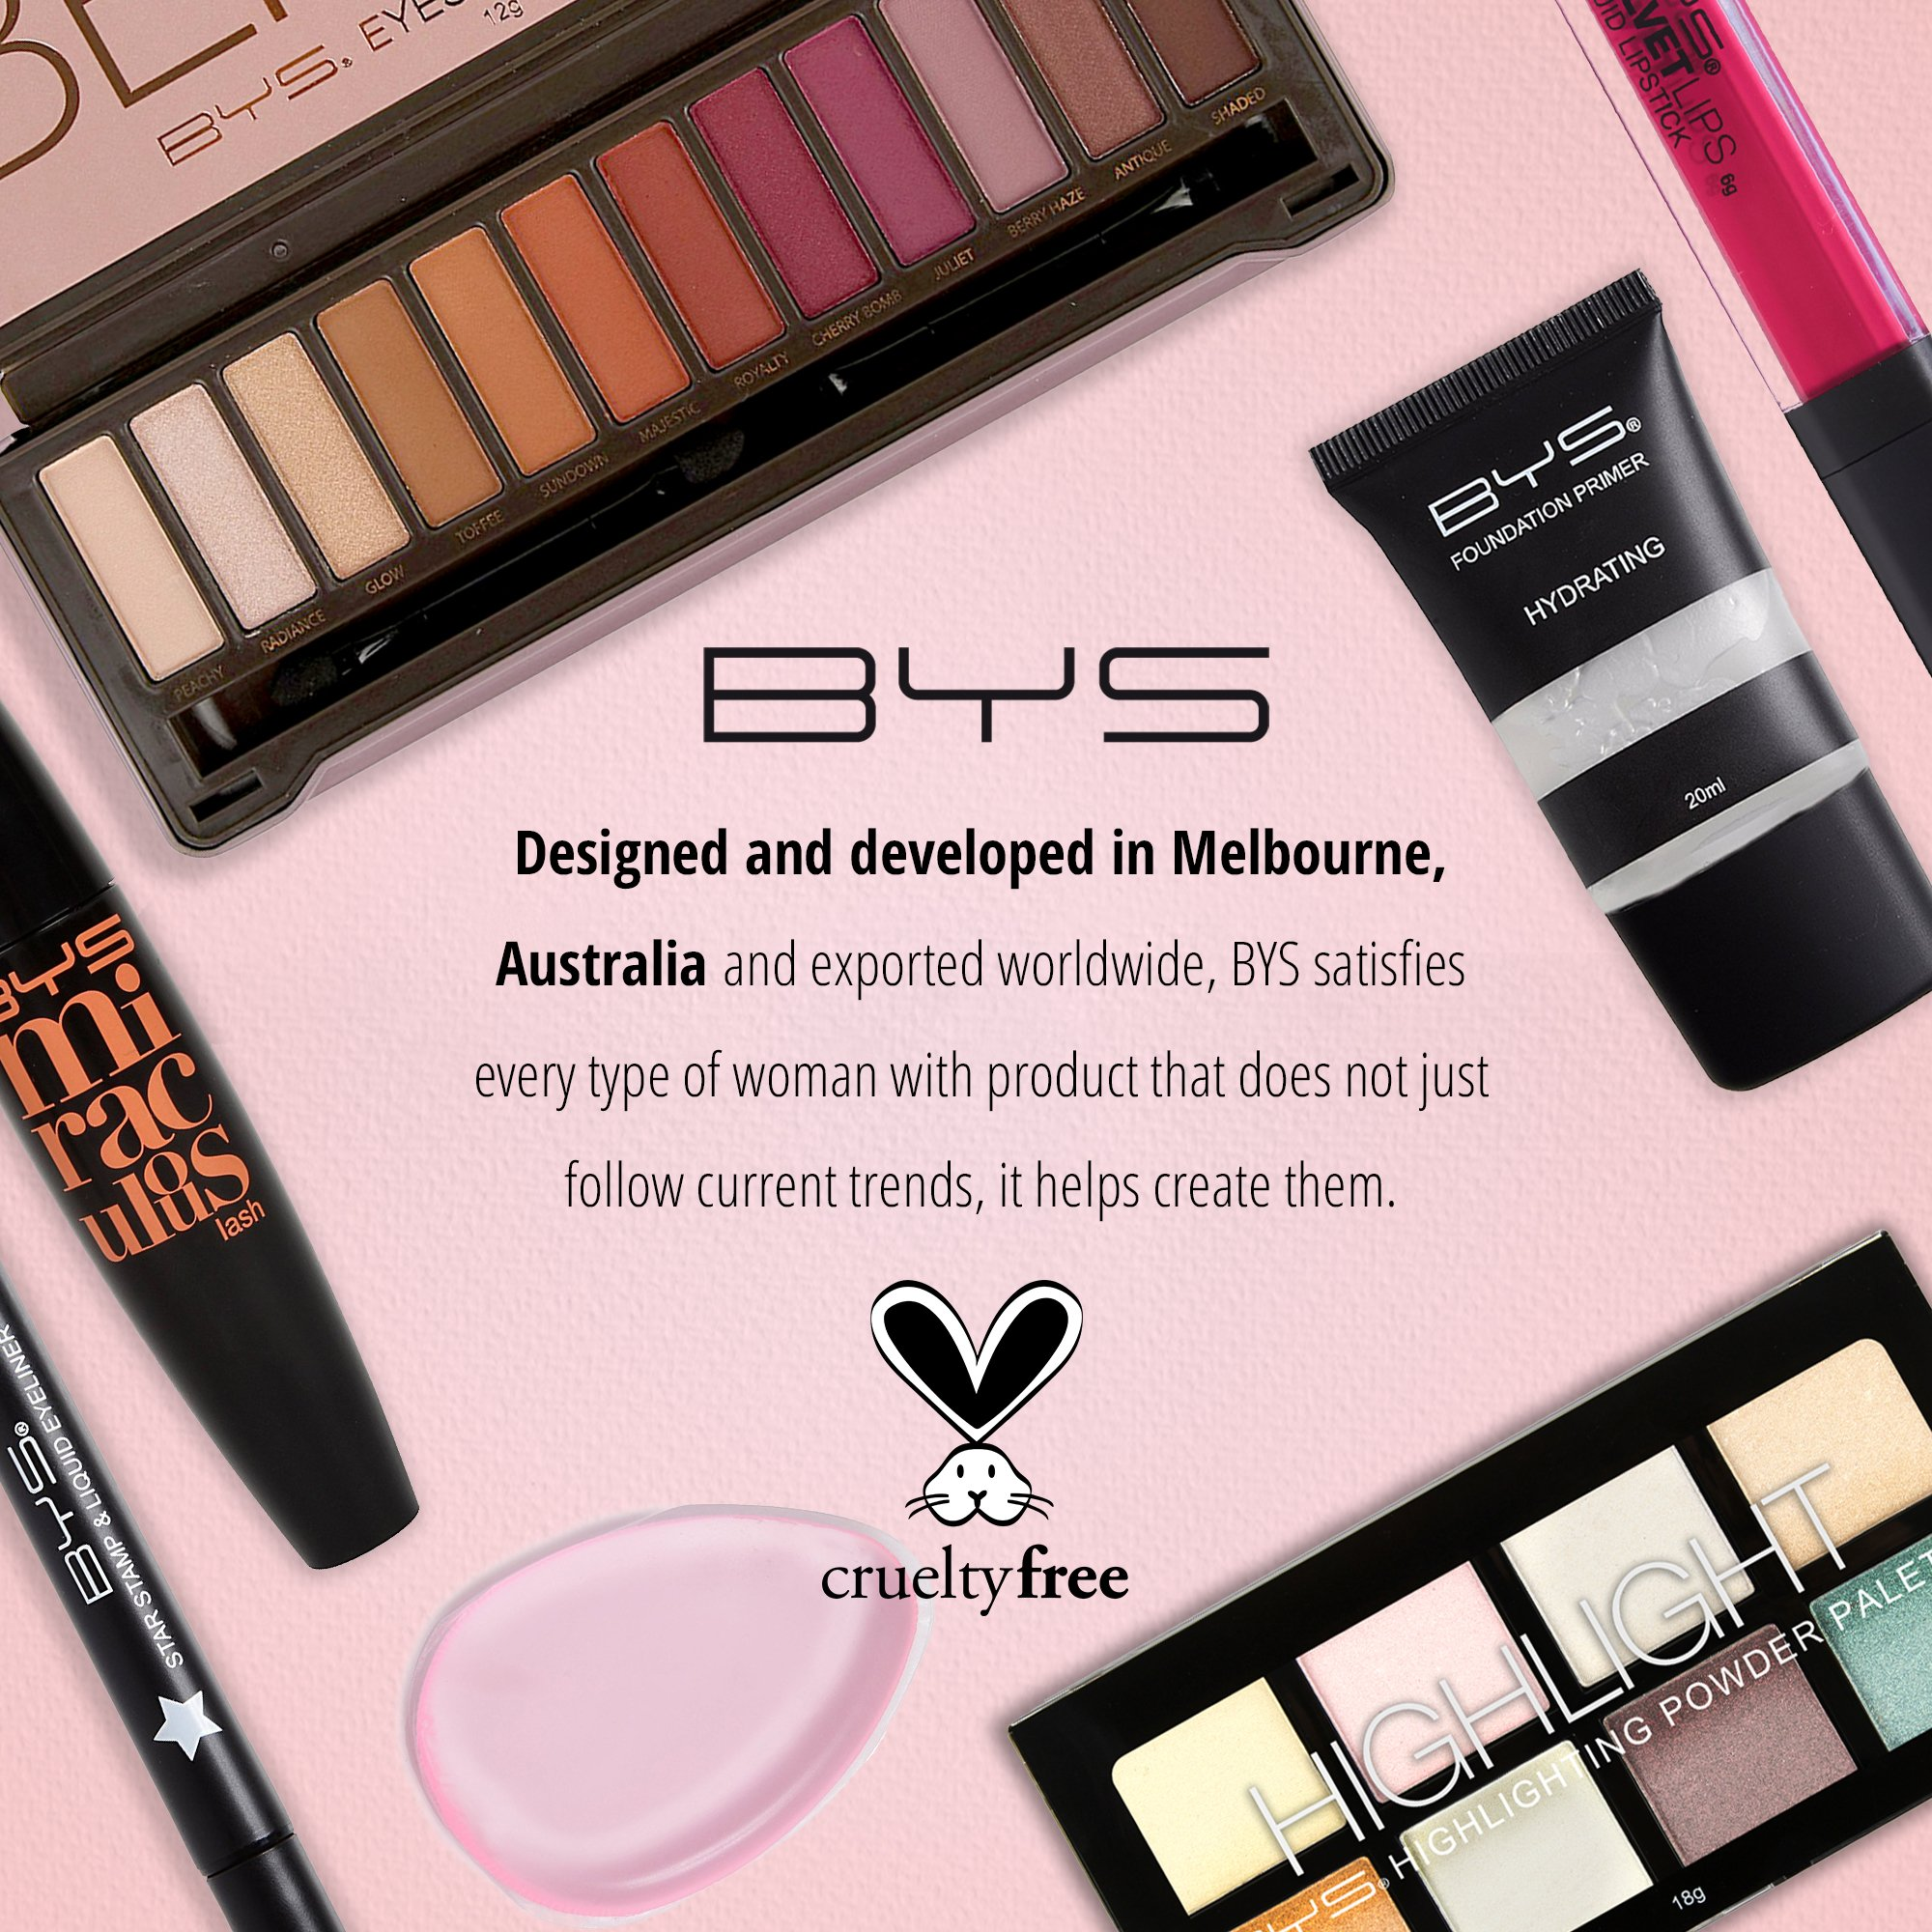 BYS Berries Eyeshadow Palette Tin with Mirror Applicator 12 Matte & Metallic Shades by BYS (Image #6)